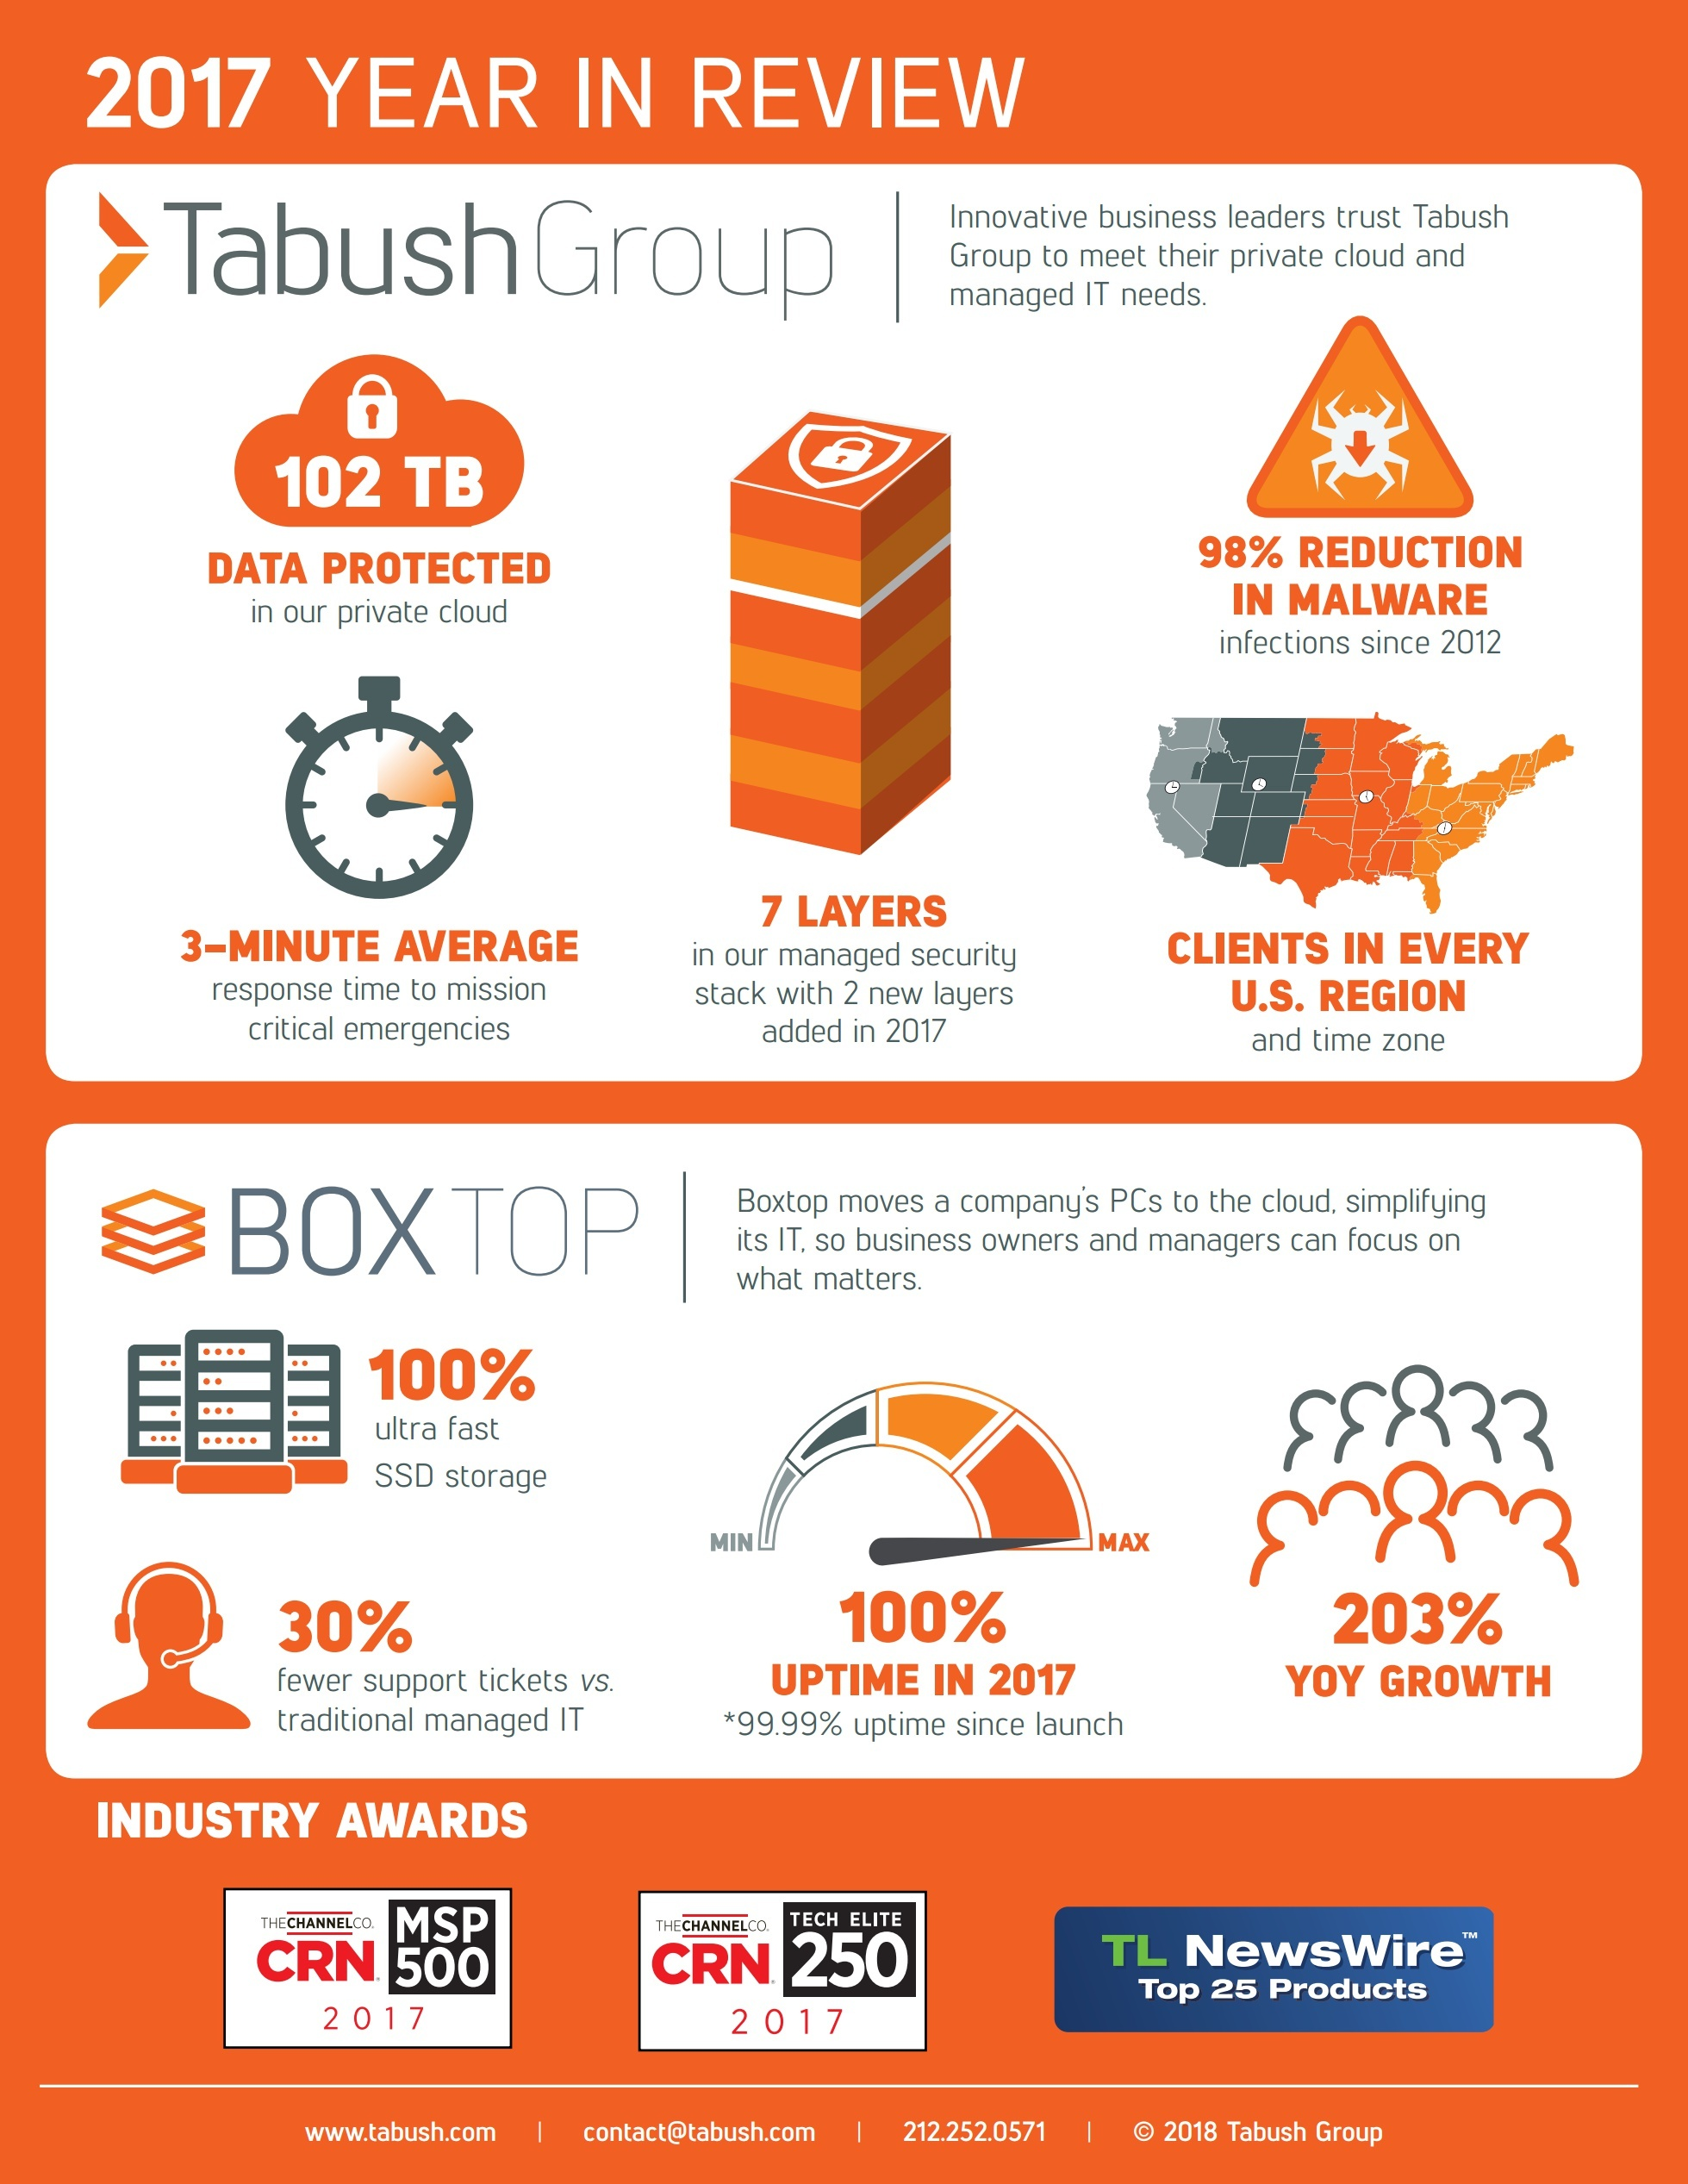 Tabush Group: 2017 by the Numbers